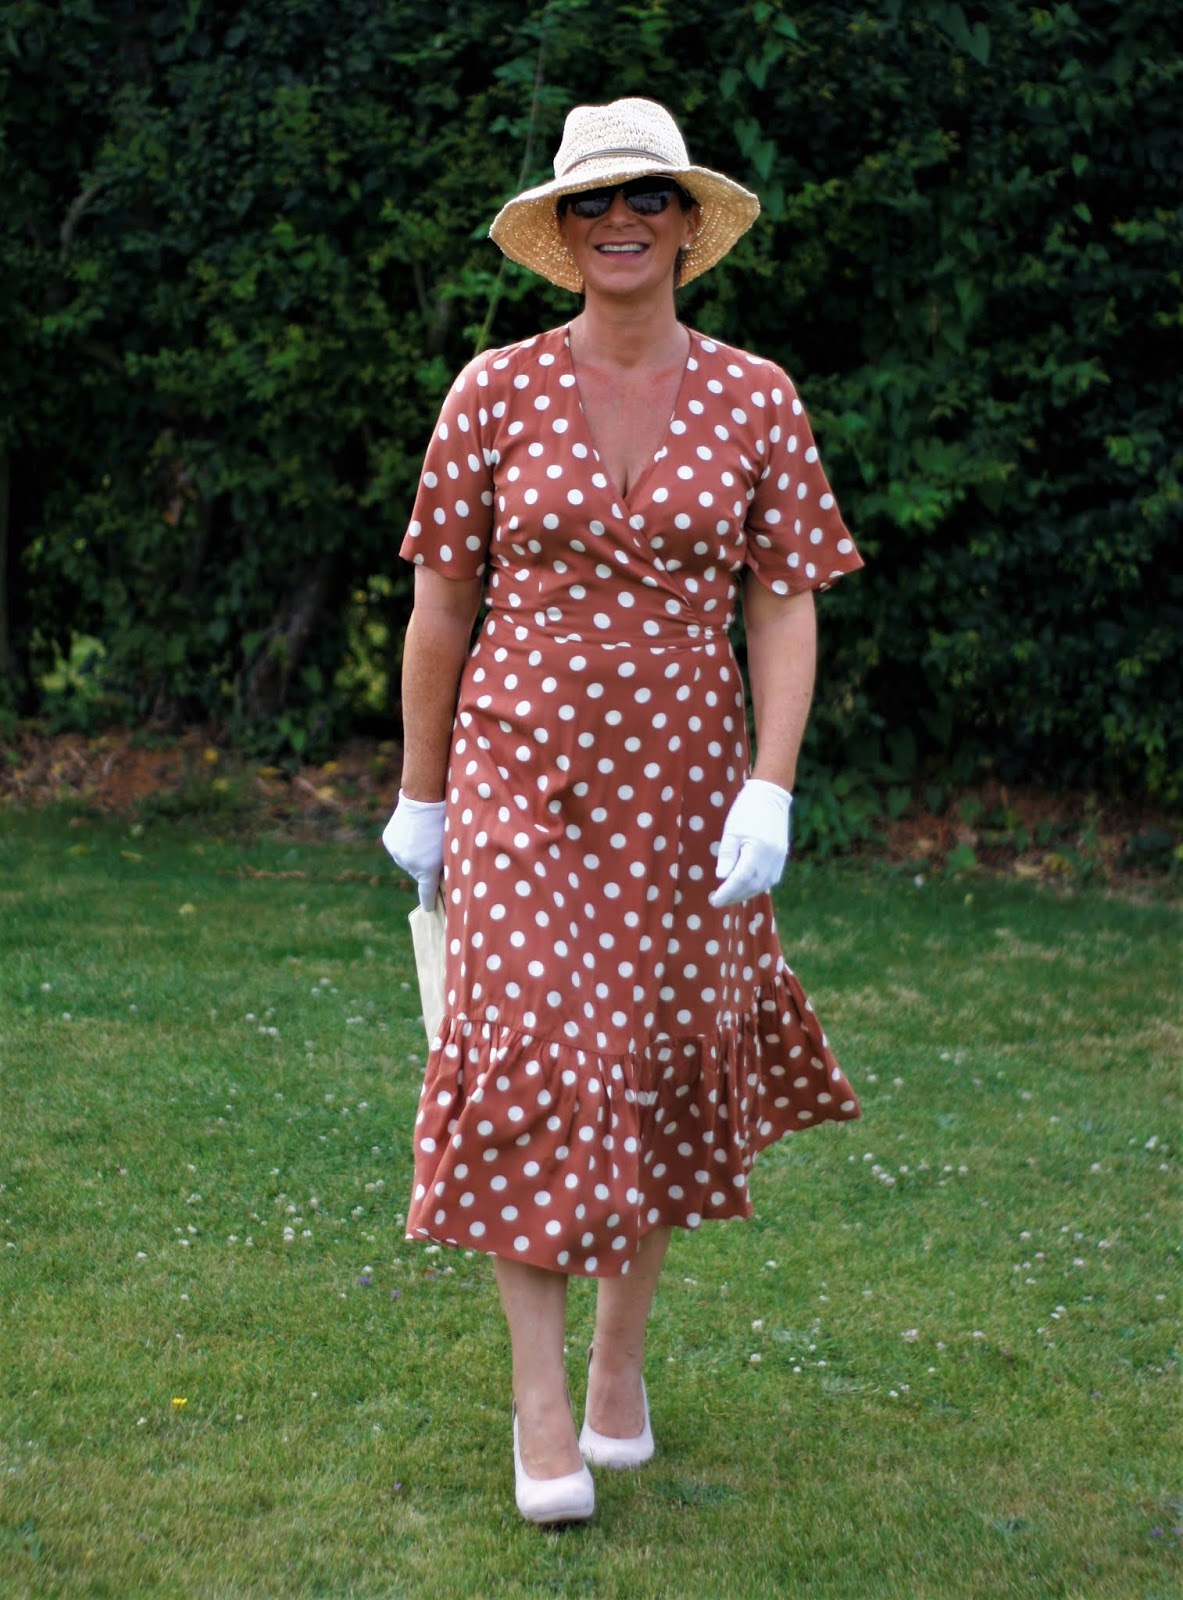 Top of the World Style Winner Jacqui of Mummy B Stylish in a pretty woman dress